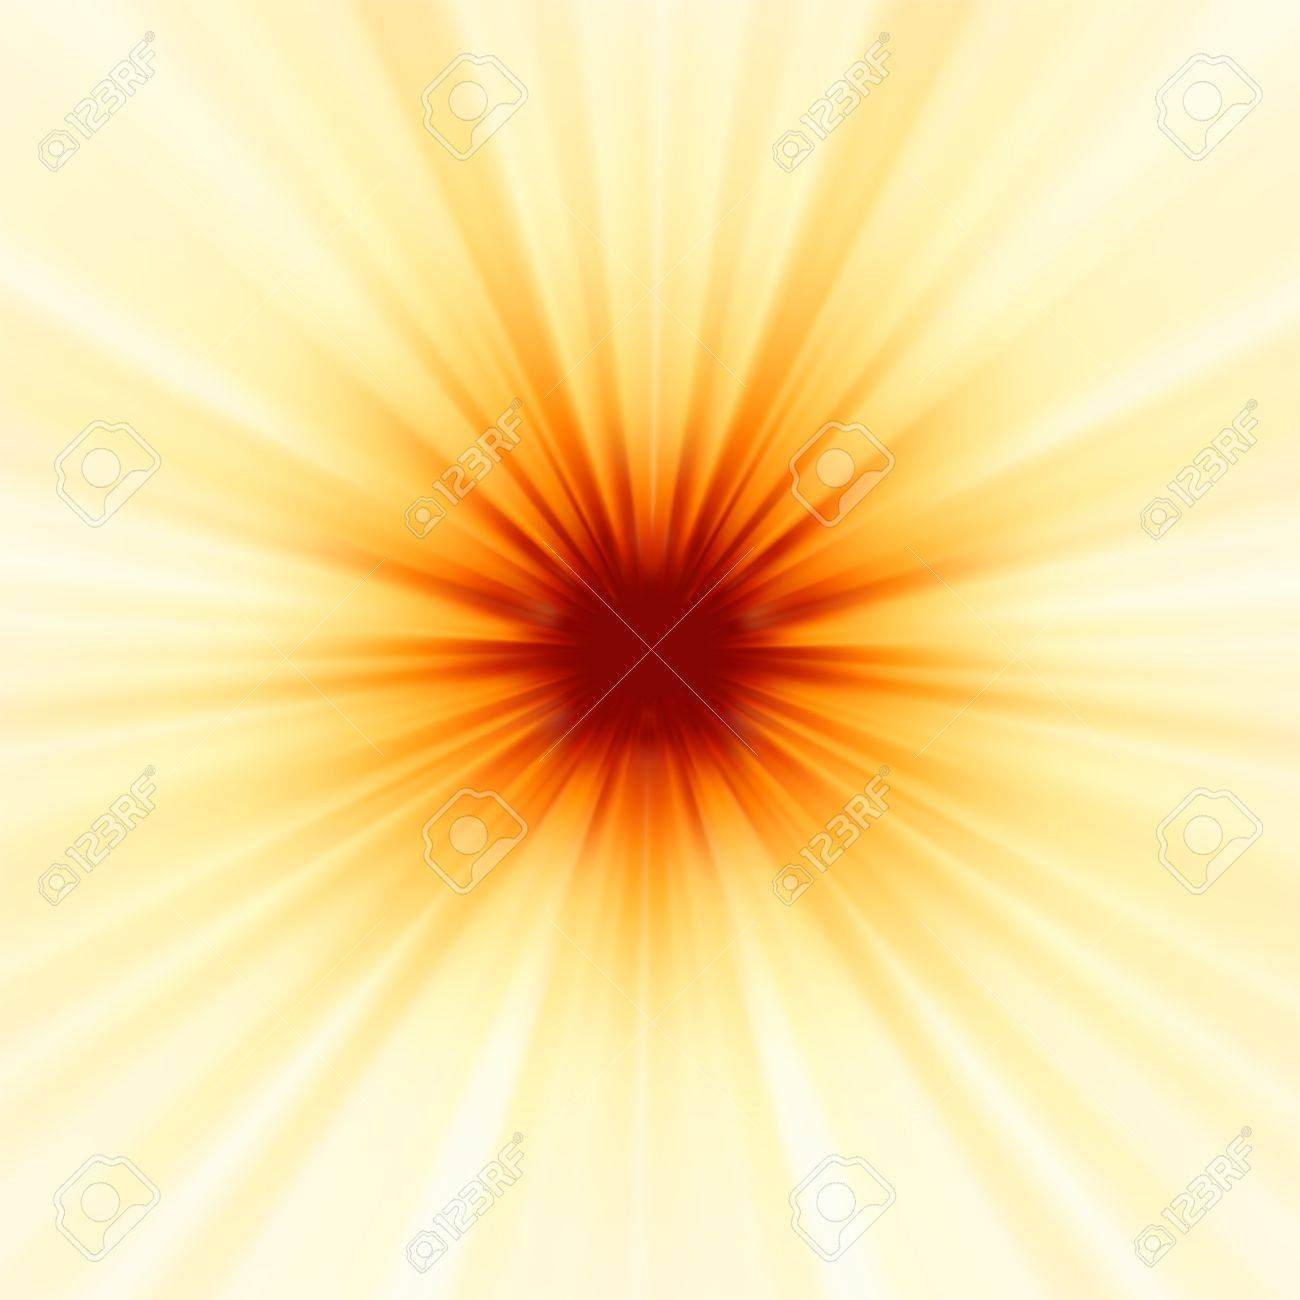 Abstract radiant star  EPS 8 vector file included Stock Vector - 17814712